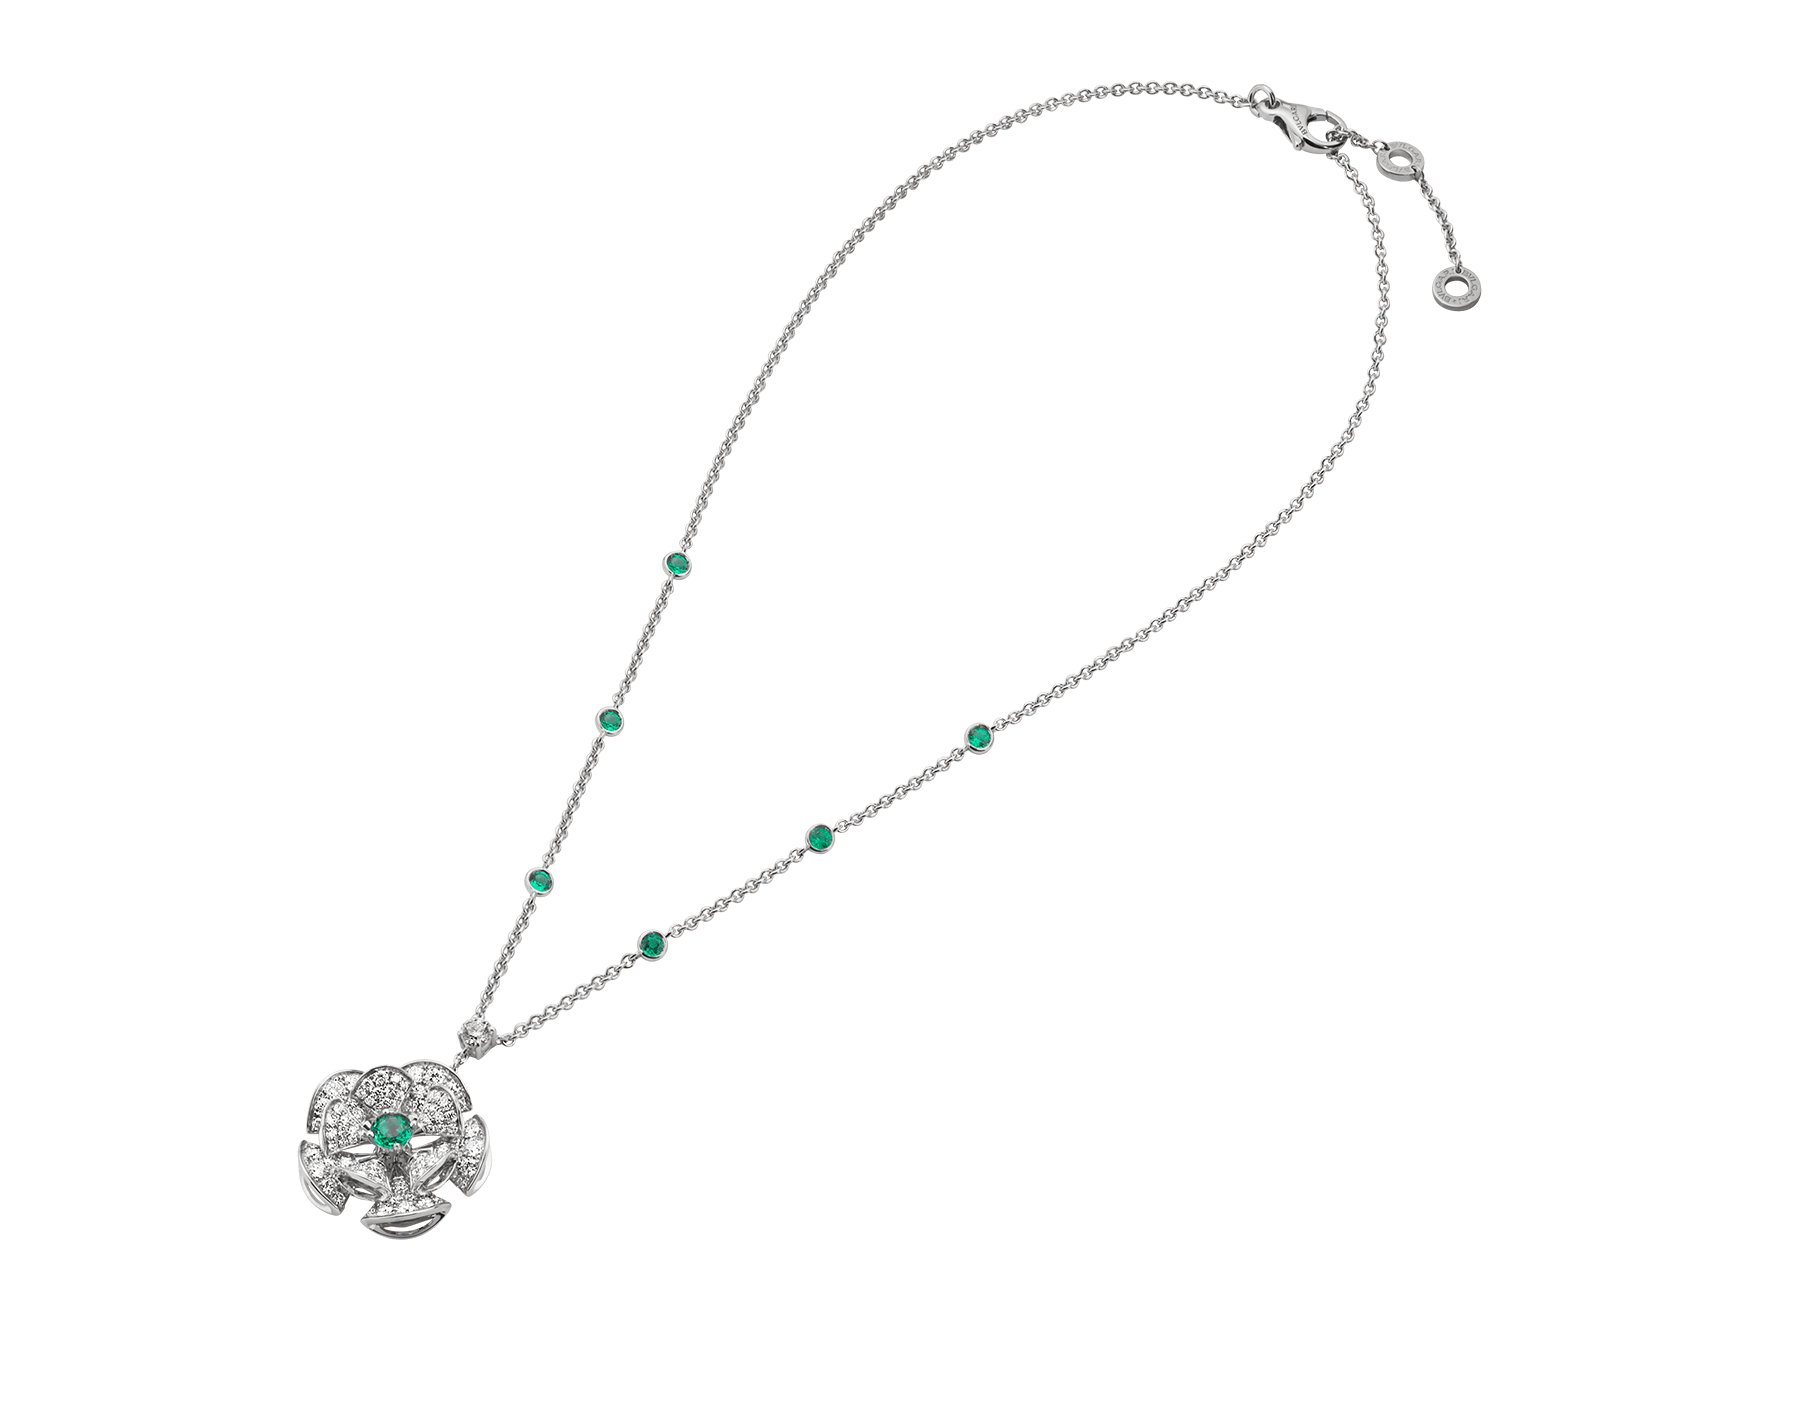 DIVAS' DREAM necklace in 18 kt white gold with chain set with emeralds and a diamond, and a pendant set with a central emerald and pavé diamonds. 352626 image 2